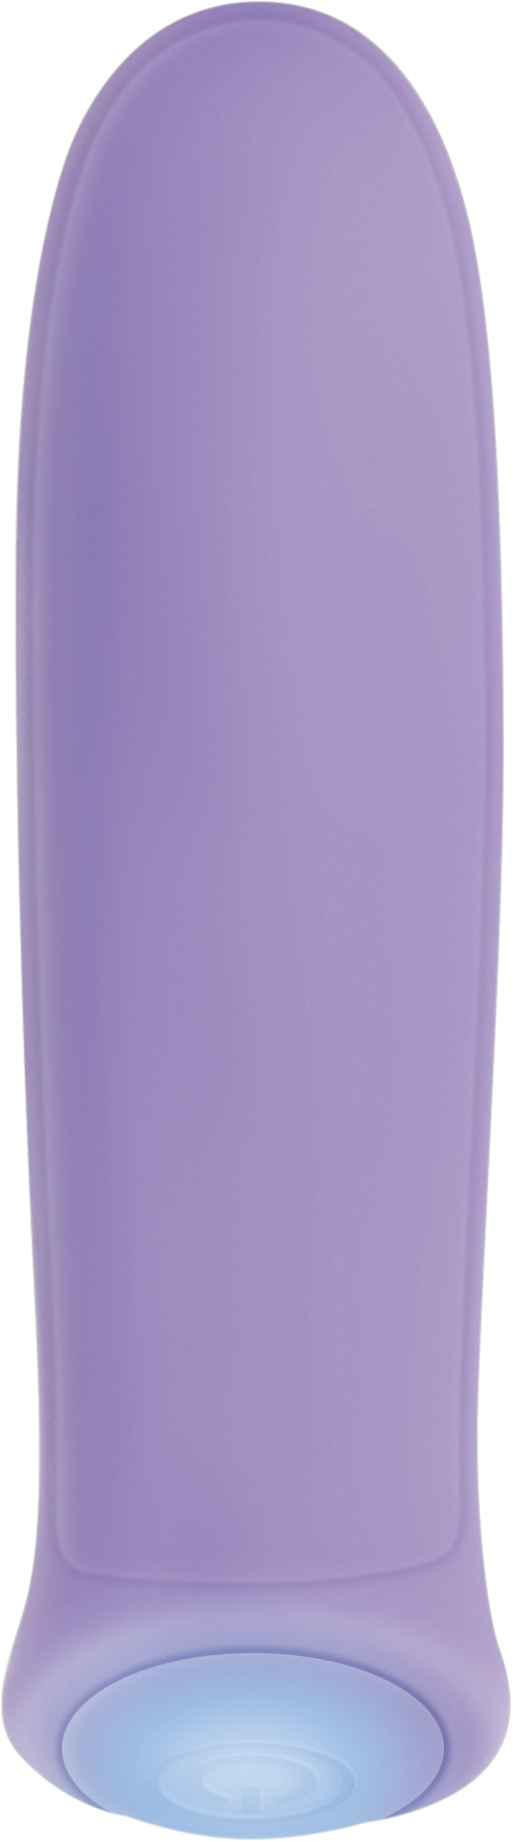 PURPLE HAZE - SILICONE RECHARGEABLE